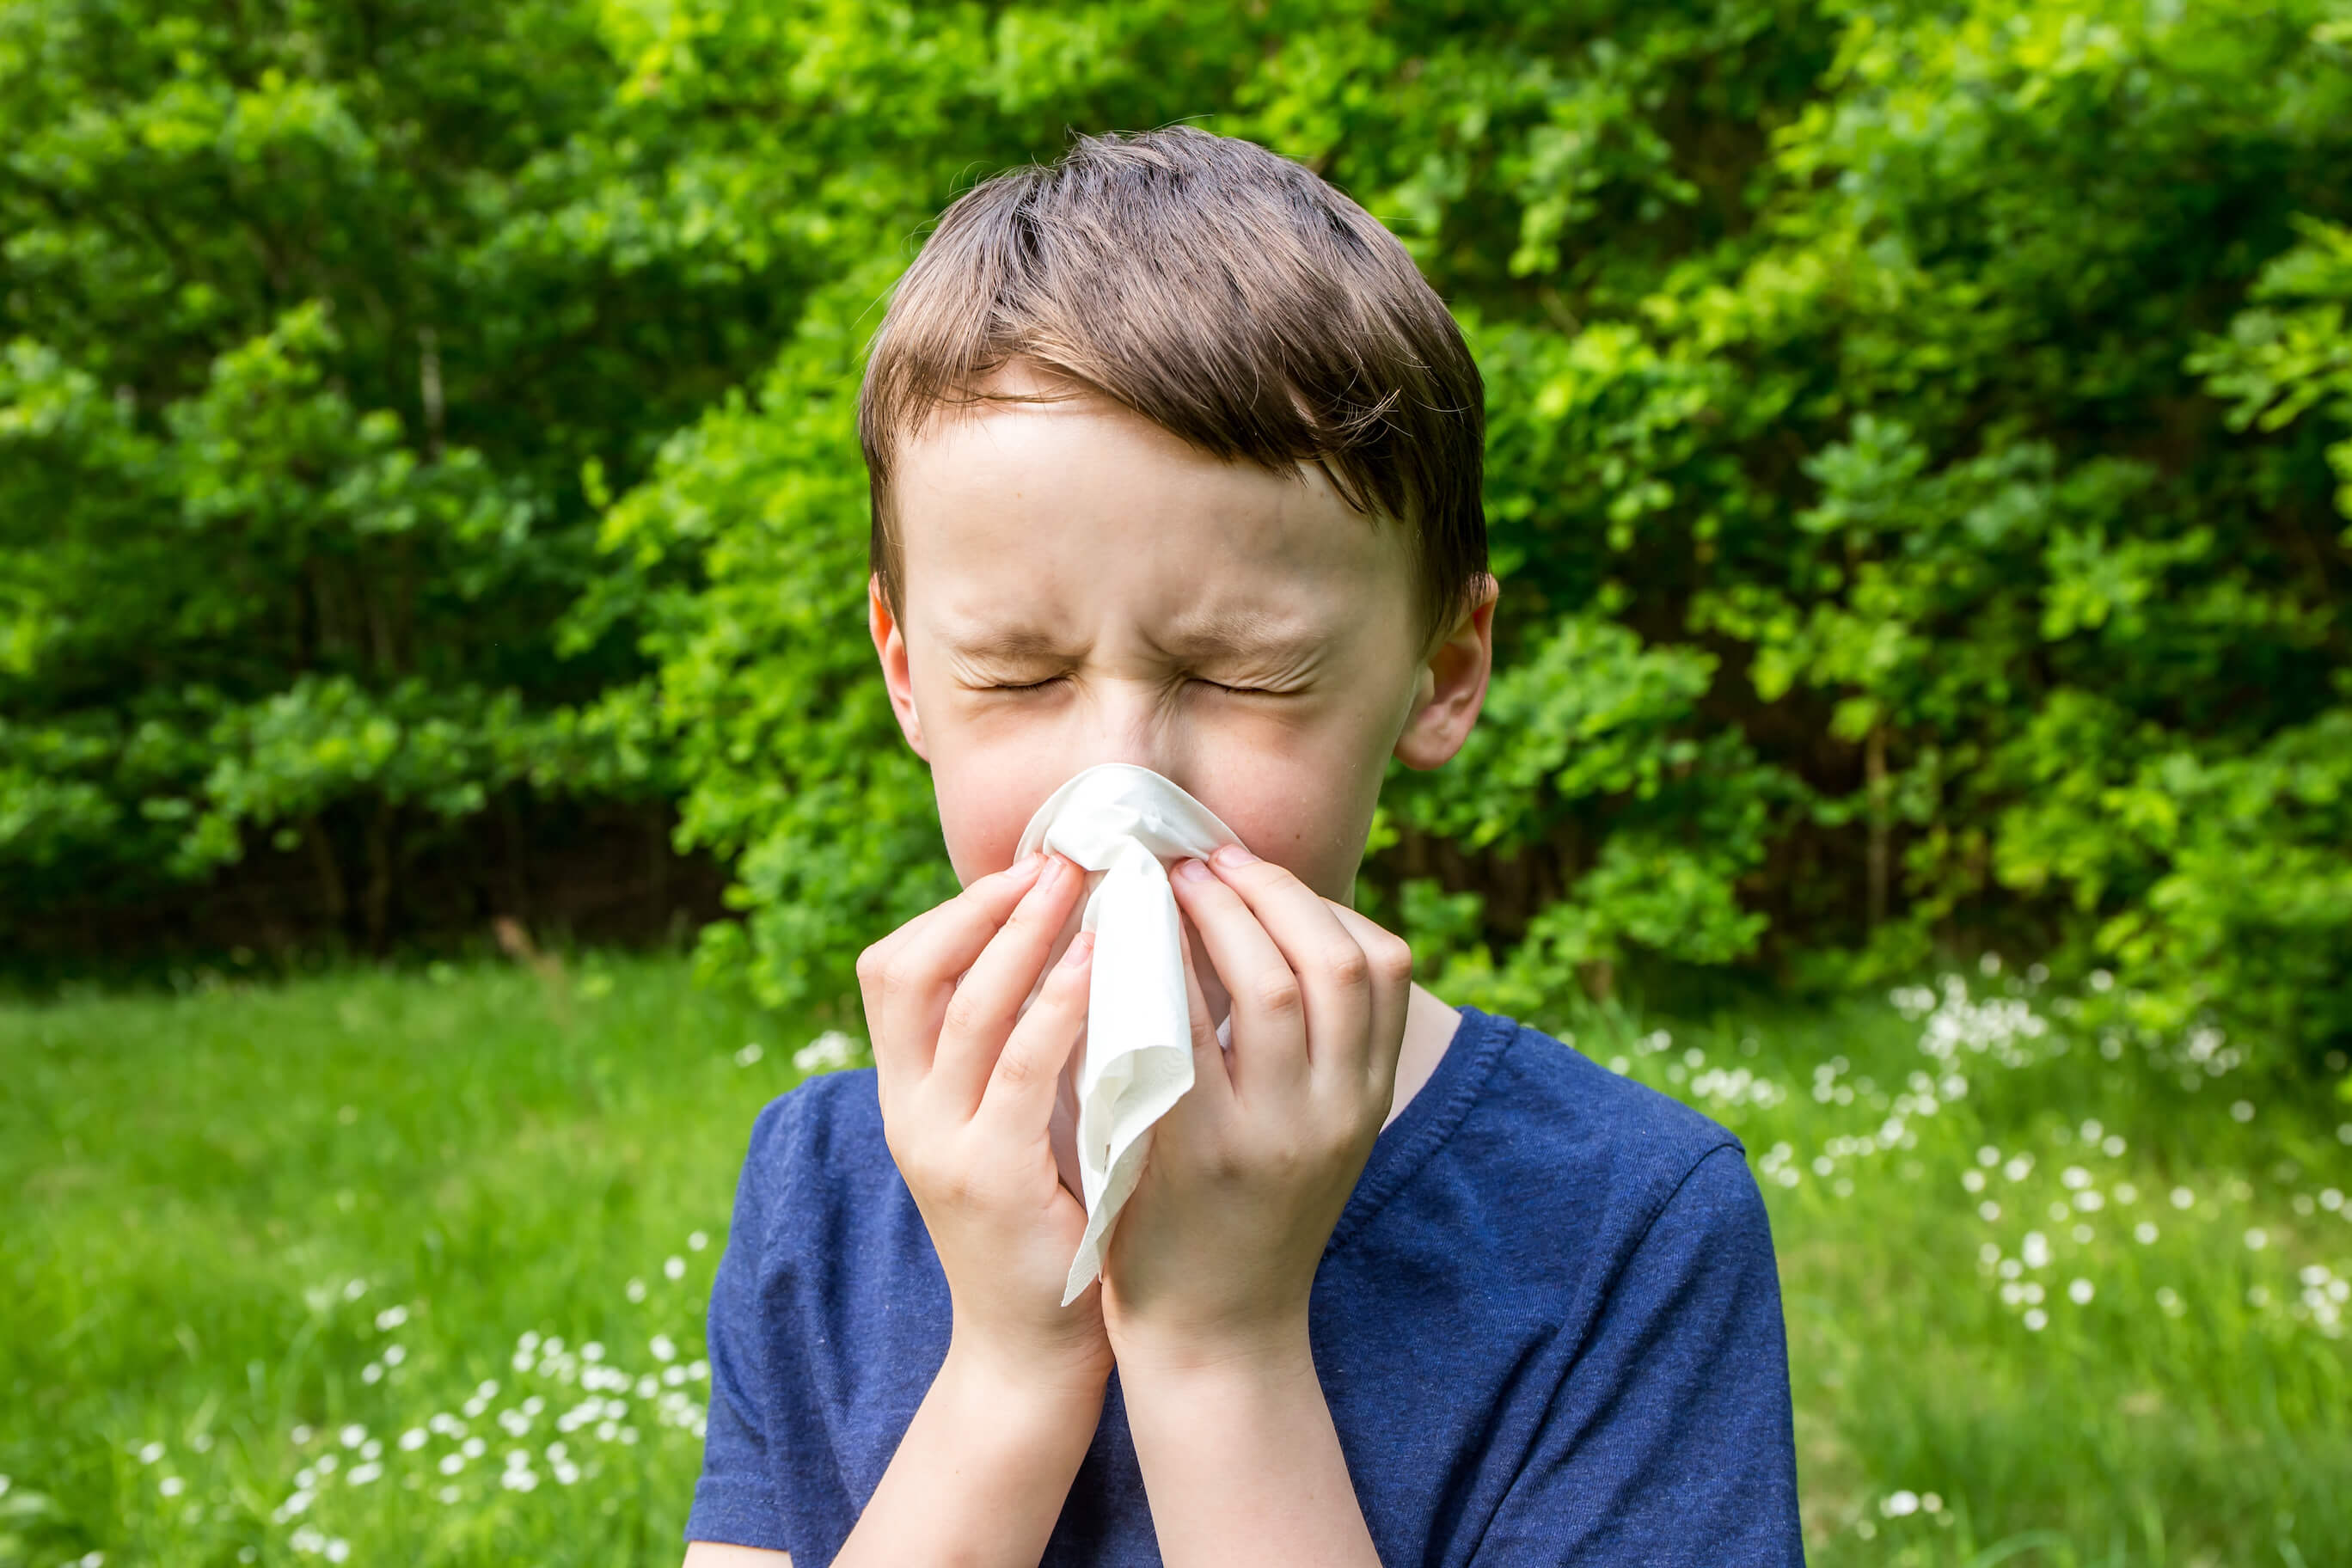 A boy experiencing nasal allergies outdoors blowing his nose.